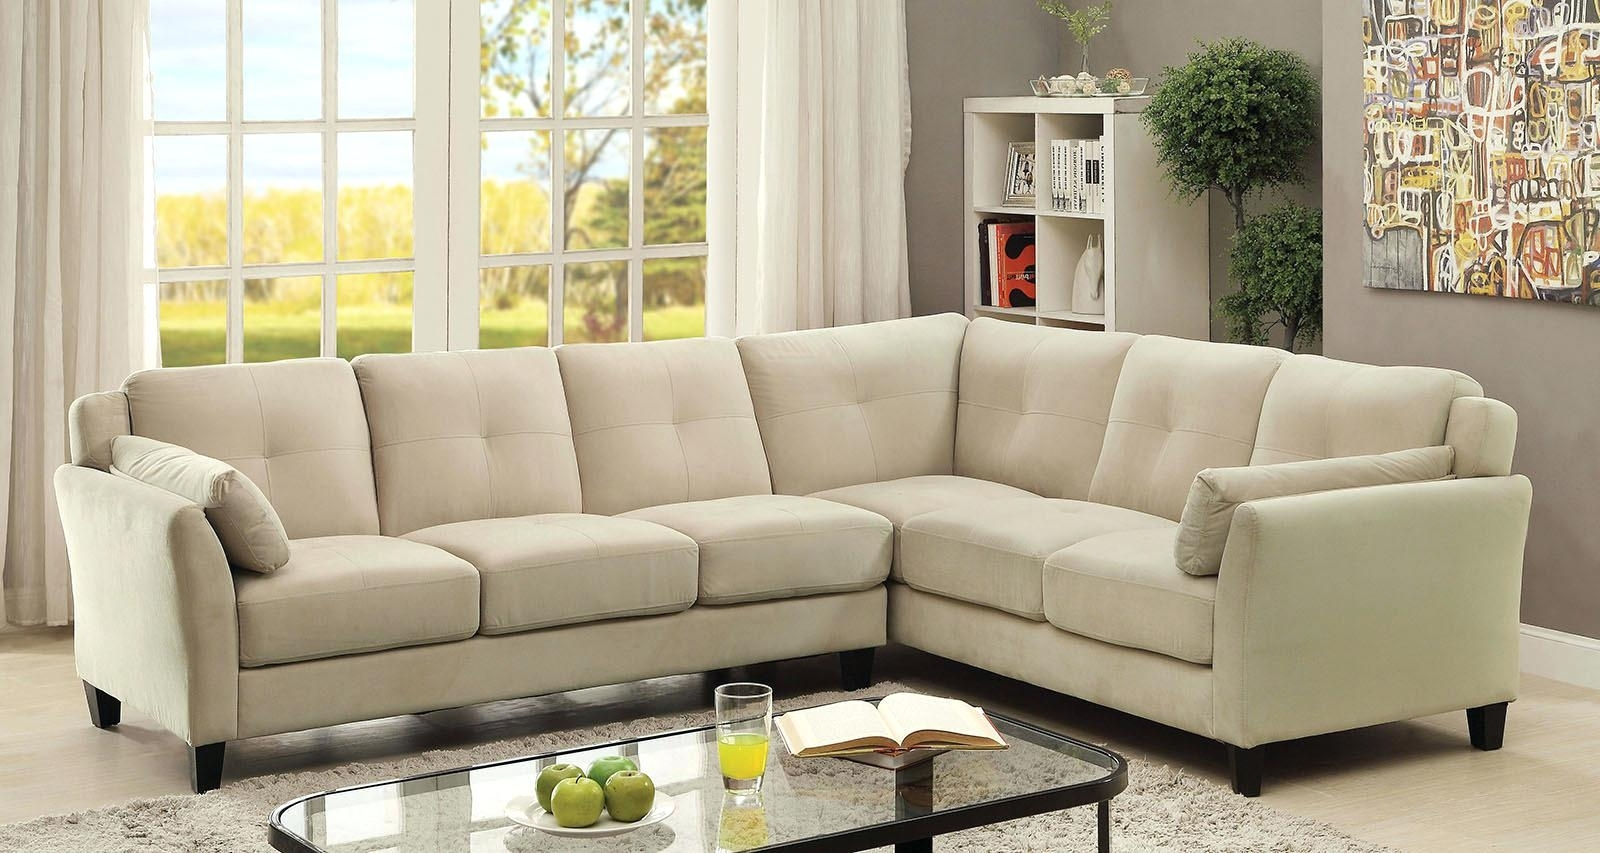 Canada Sale Sectional Sofas Regarding Latest Sectional Sofa Sale Sa Couches For Near Me Liquidation Toronto (View 4 of 15)